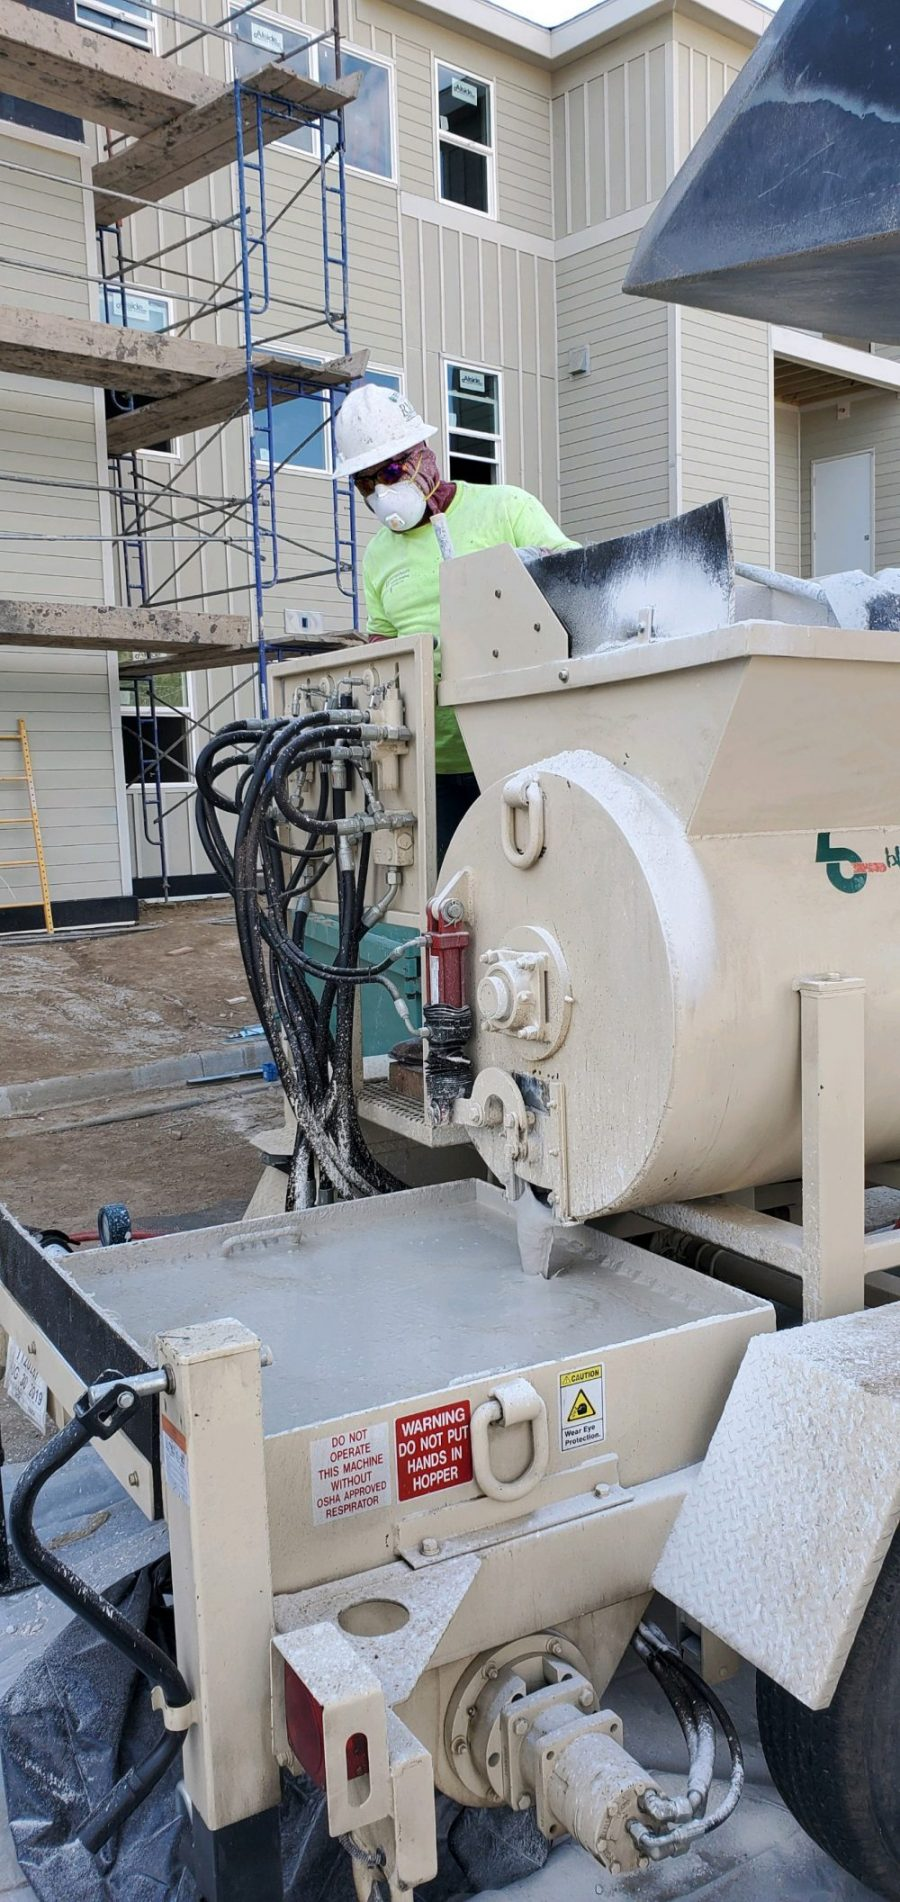 Blastcrete introduces RS180 Mixer-Pump for high-volume Gypsum applications